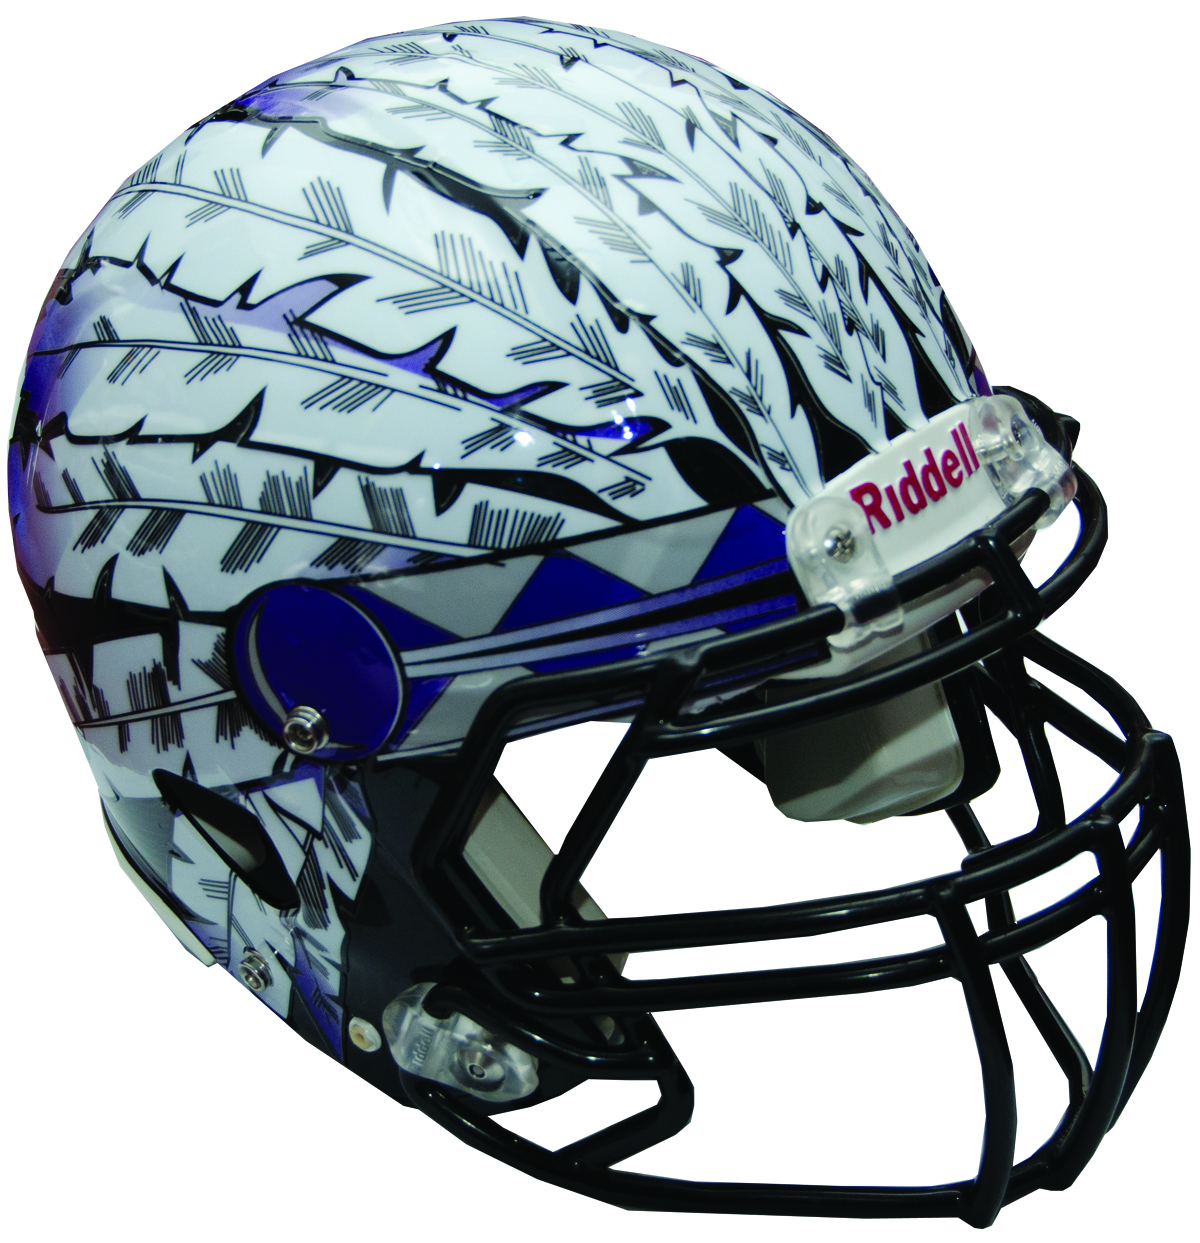 Cool Football Helmet Sticker Designs